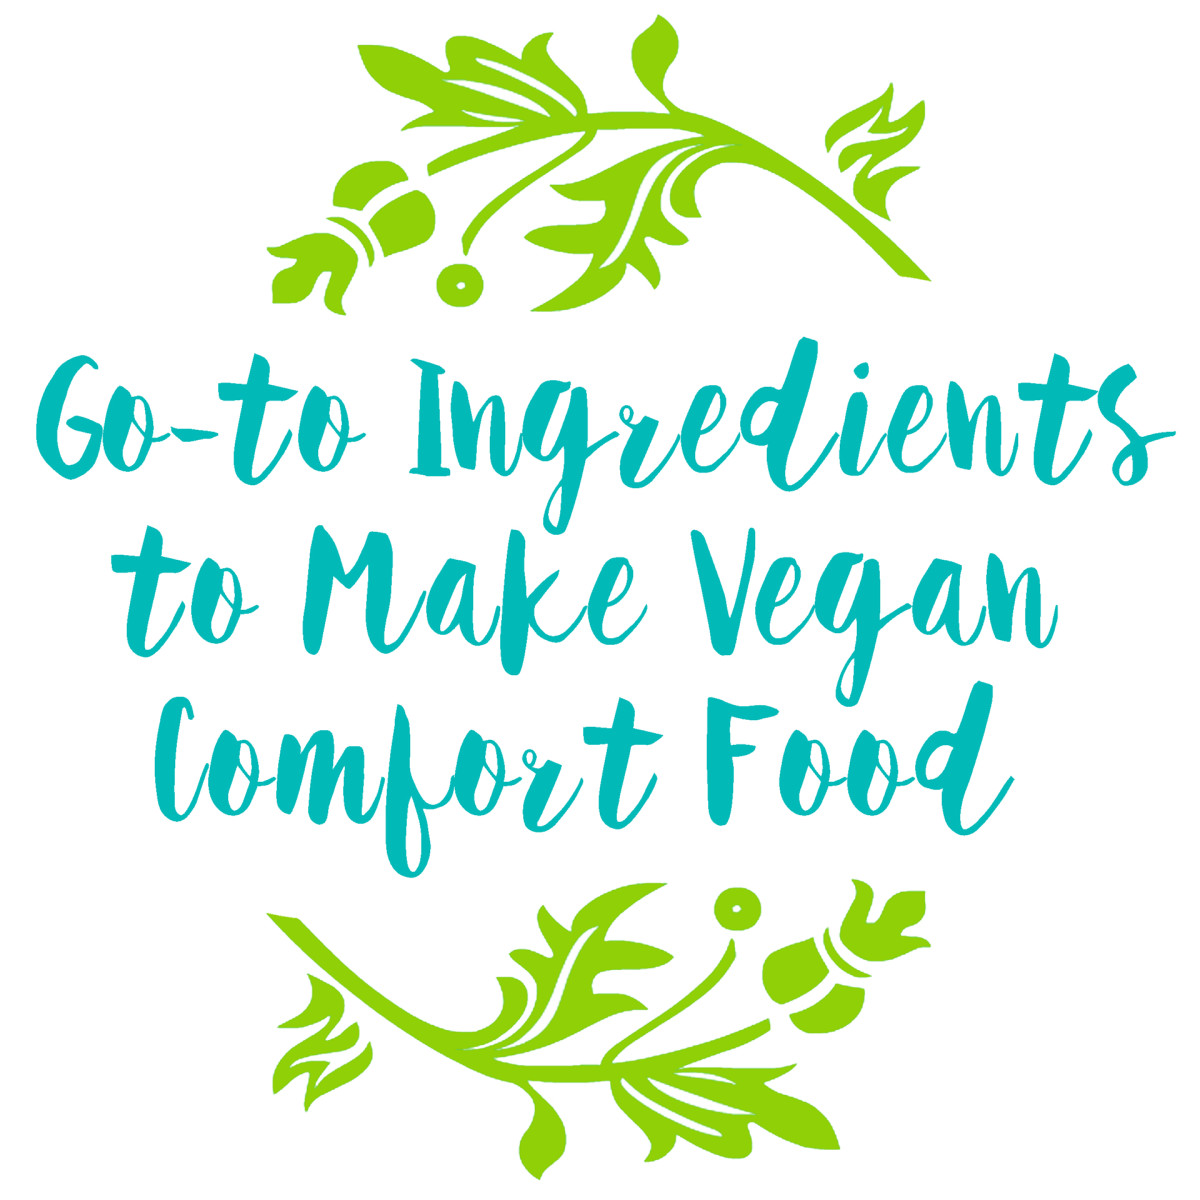 Vegan Comfort Food: Product Recommendations and Recipe Tips